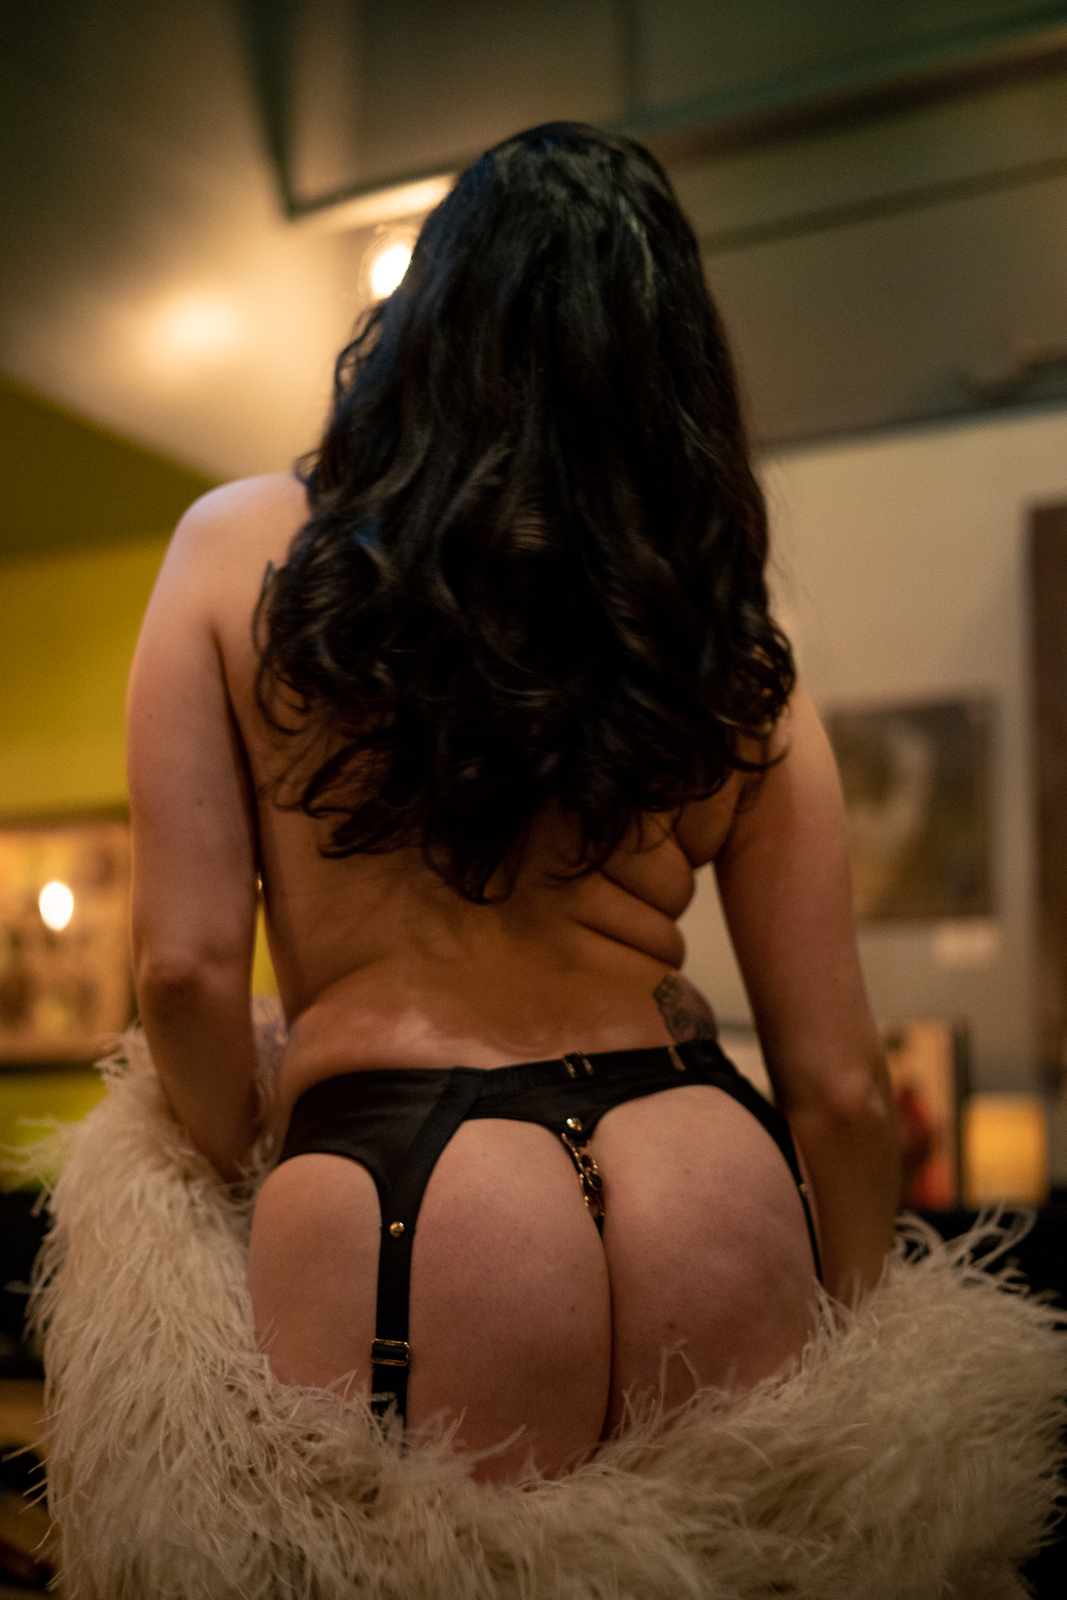 A semi-nude burlesque dancer photographed from behind